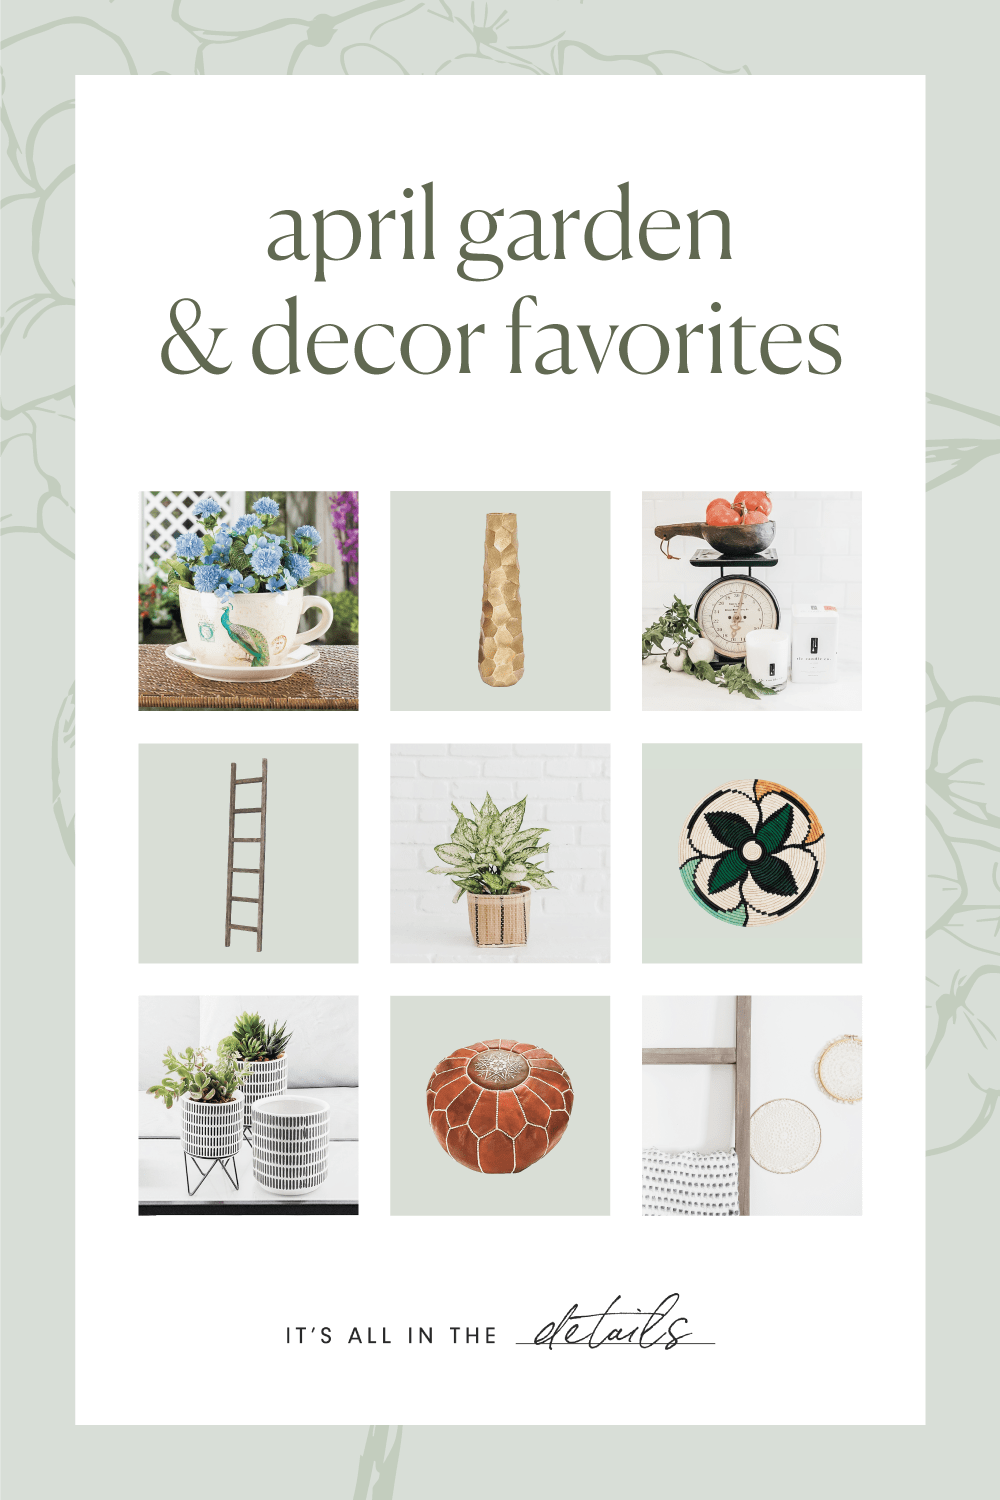 April Garden & Decor Favorites